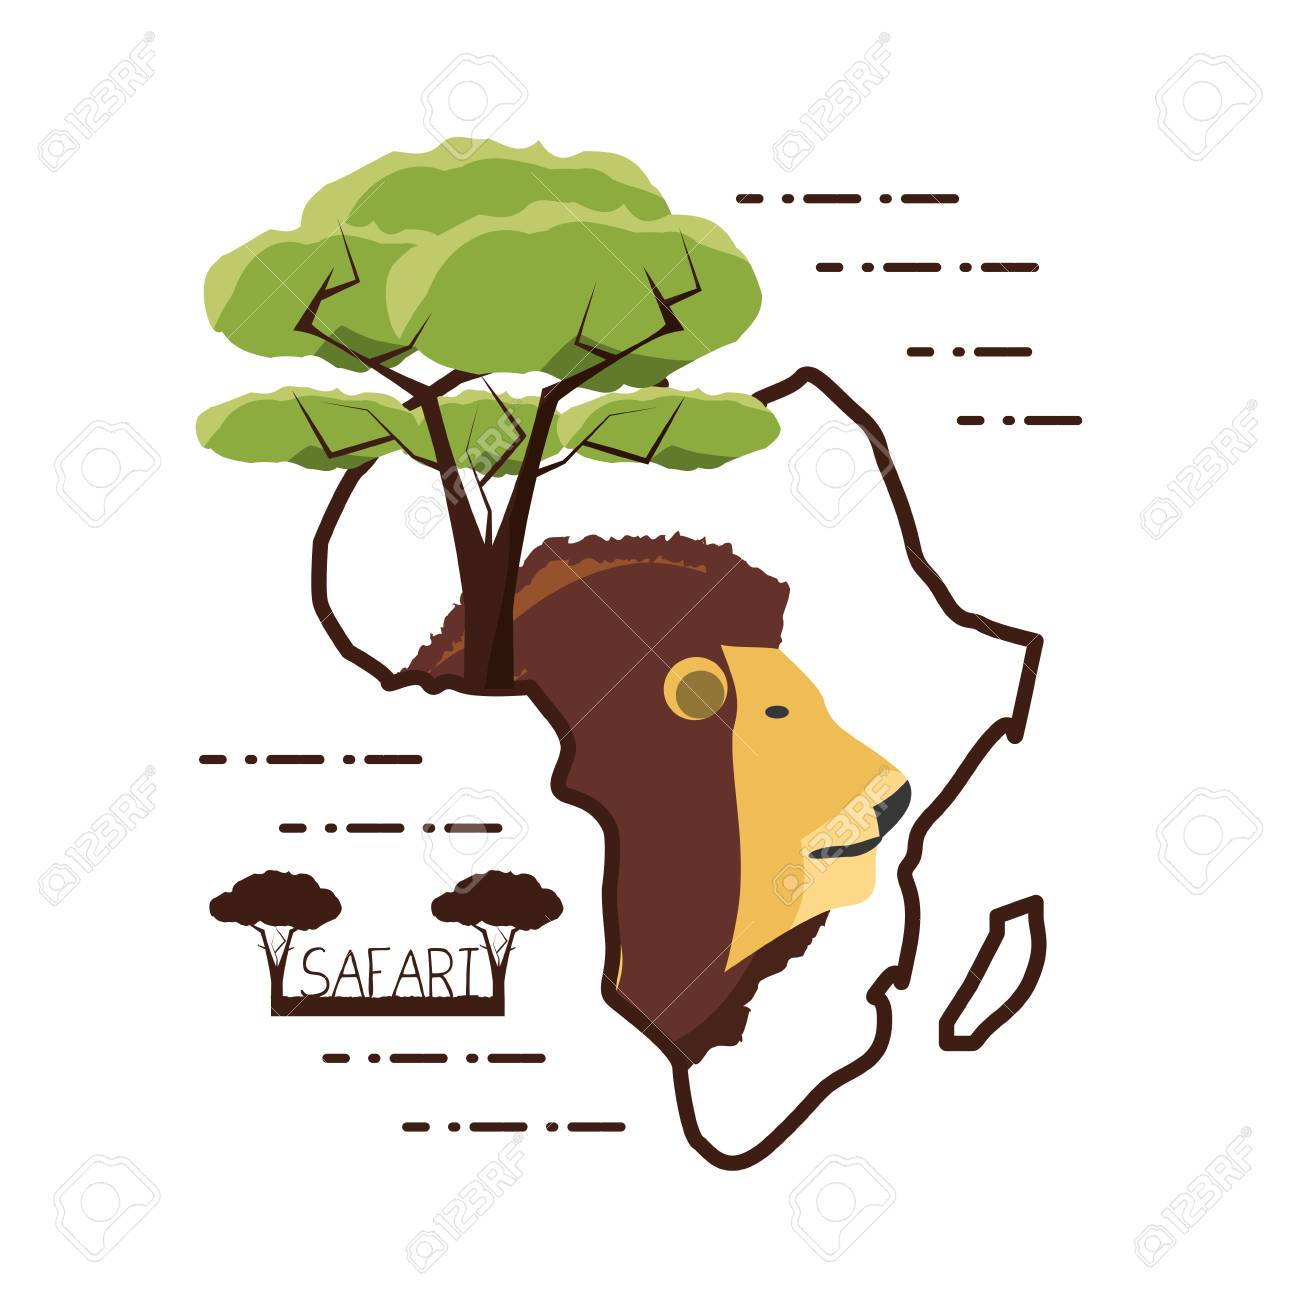 Shape Of Africa Map.Lion And Tree In Africa Map Shape Over White Background Colorful